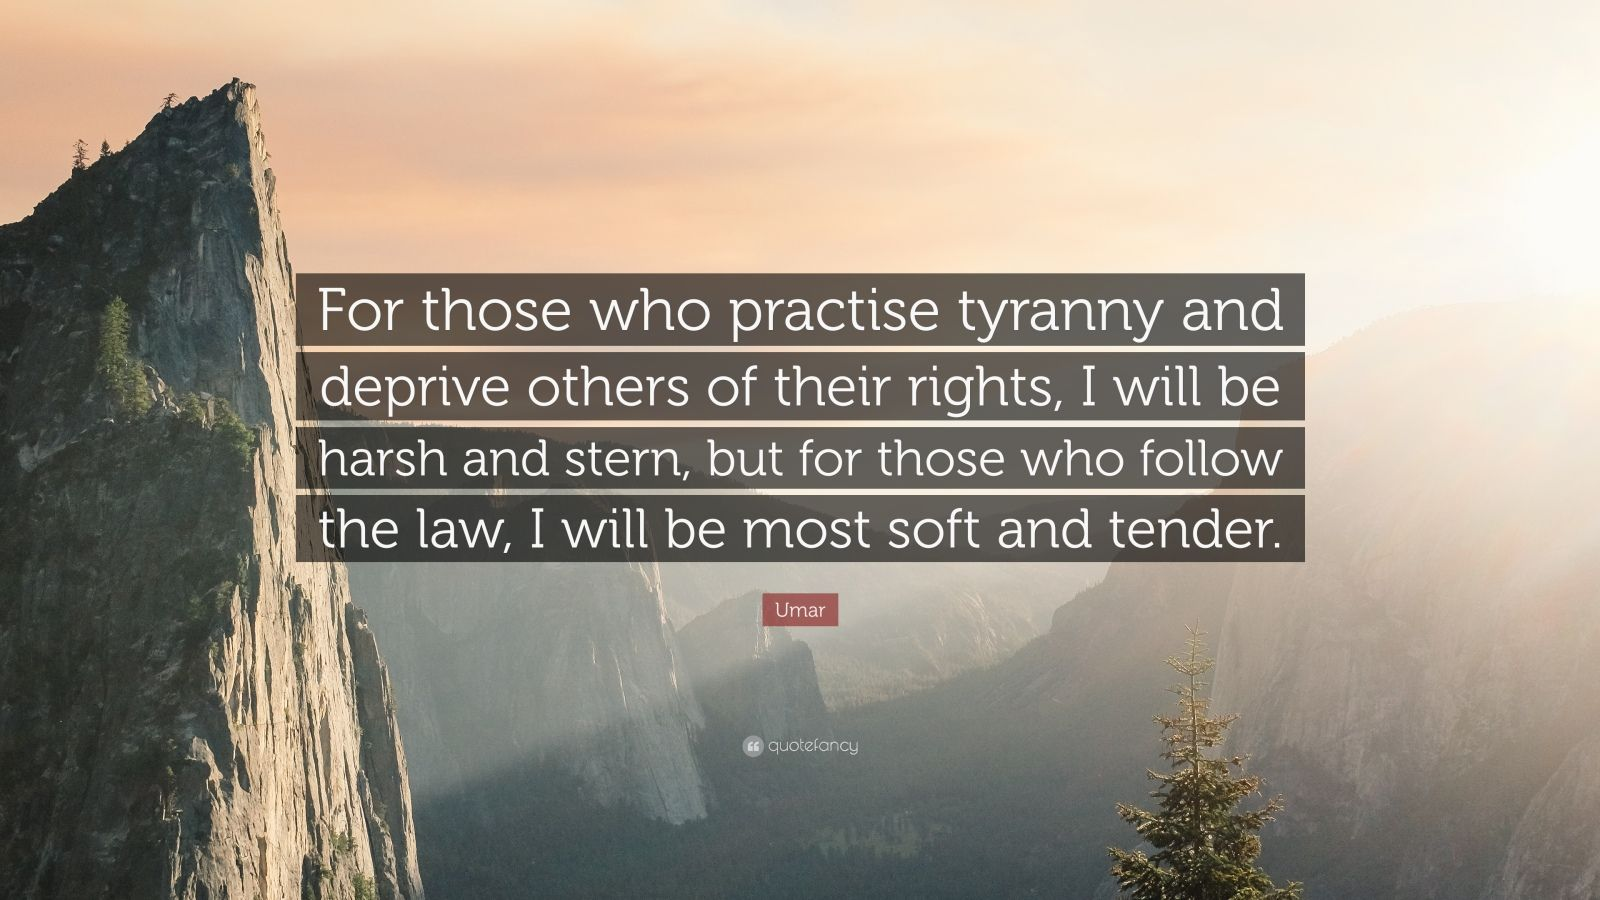 """Umar Quote: """"For those who practise tyranny and deprive others of their rights, I will be harsh and stern, but for those who follow the law, I will be most soft and tender."""""""